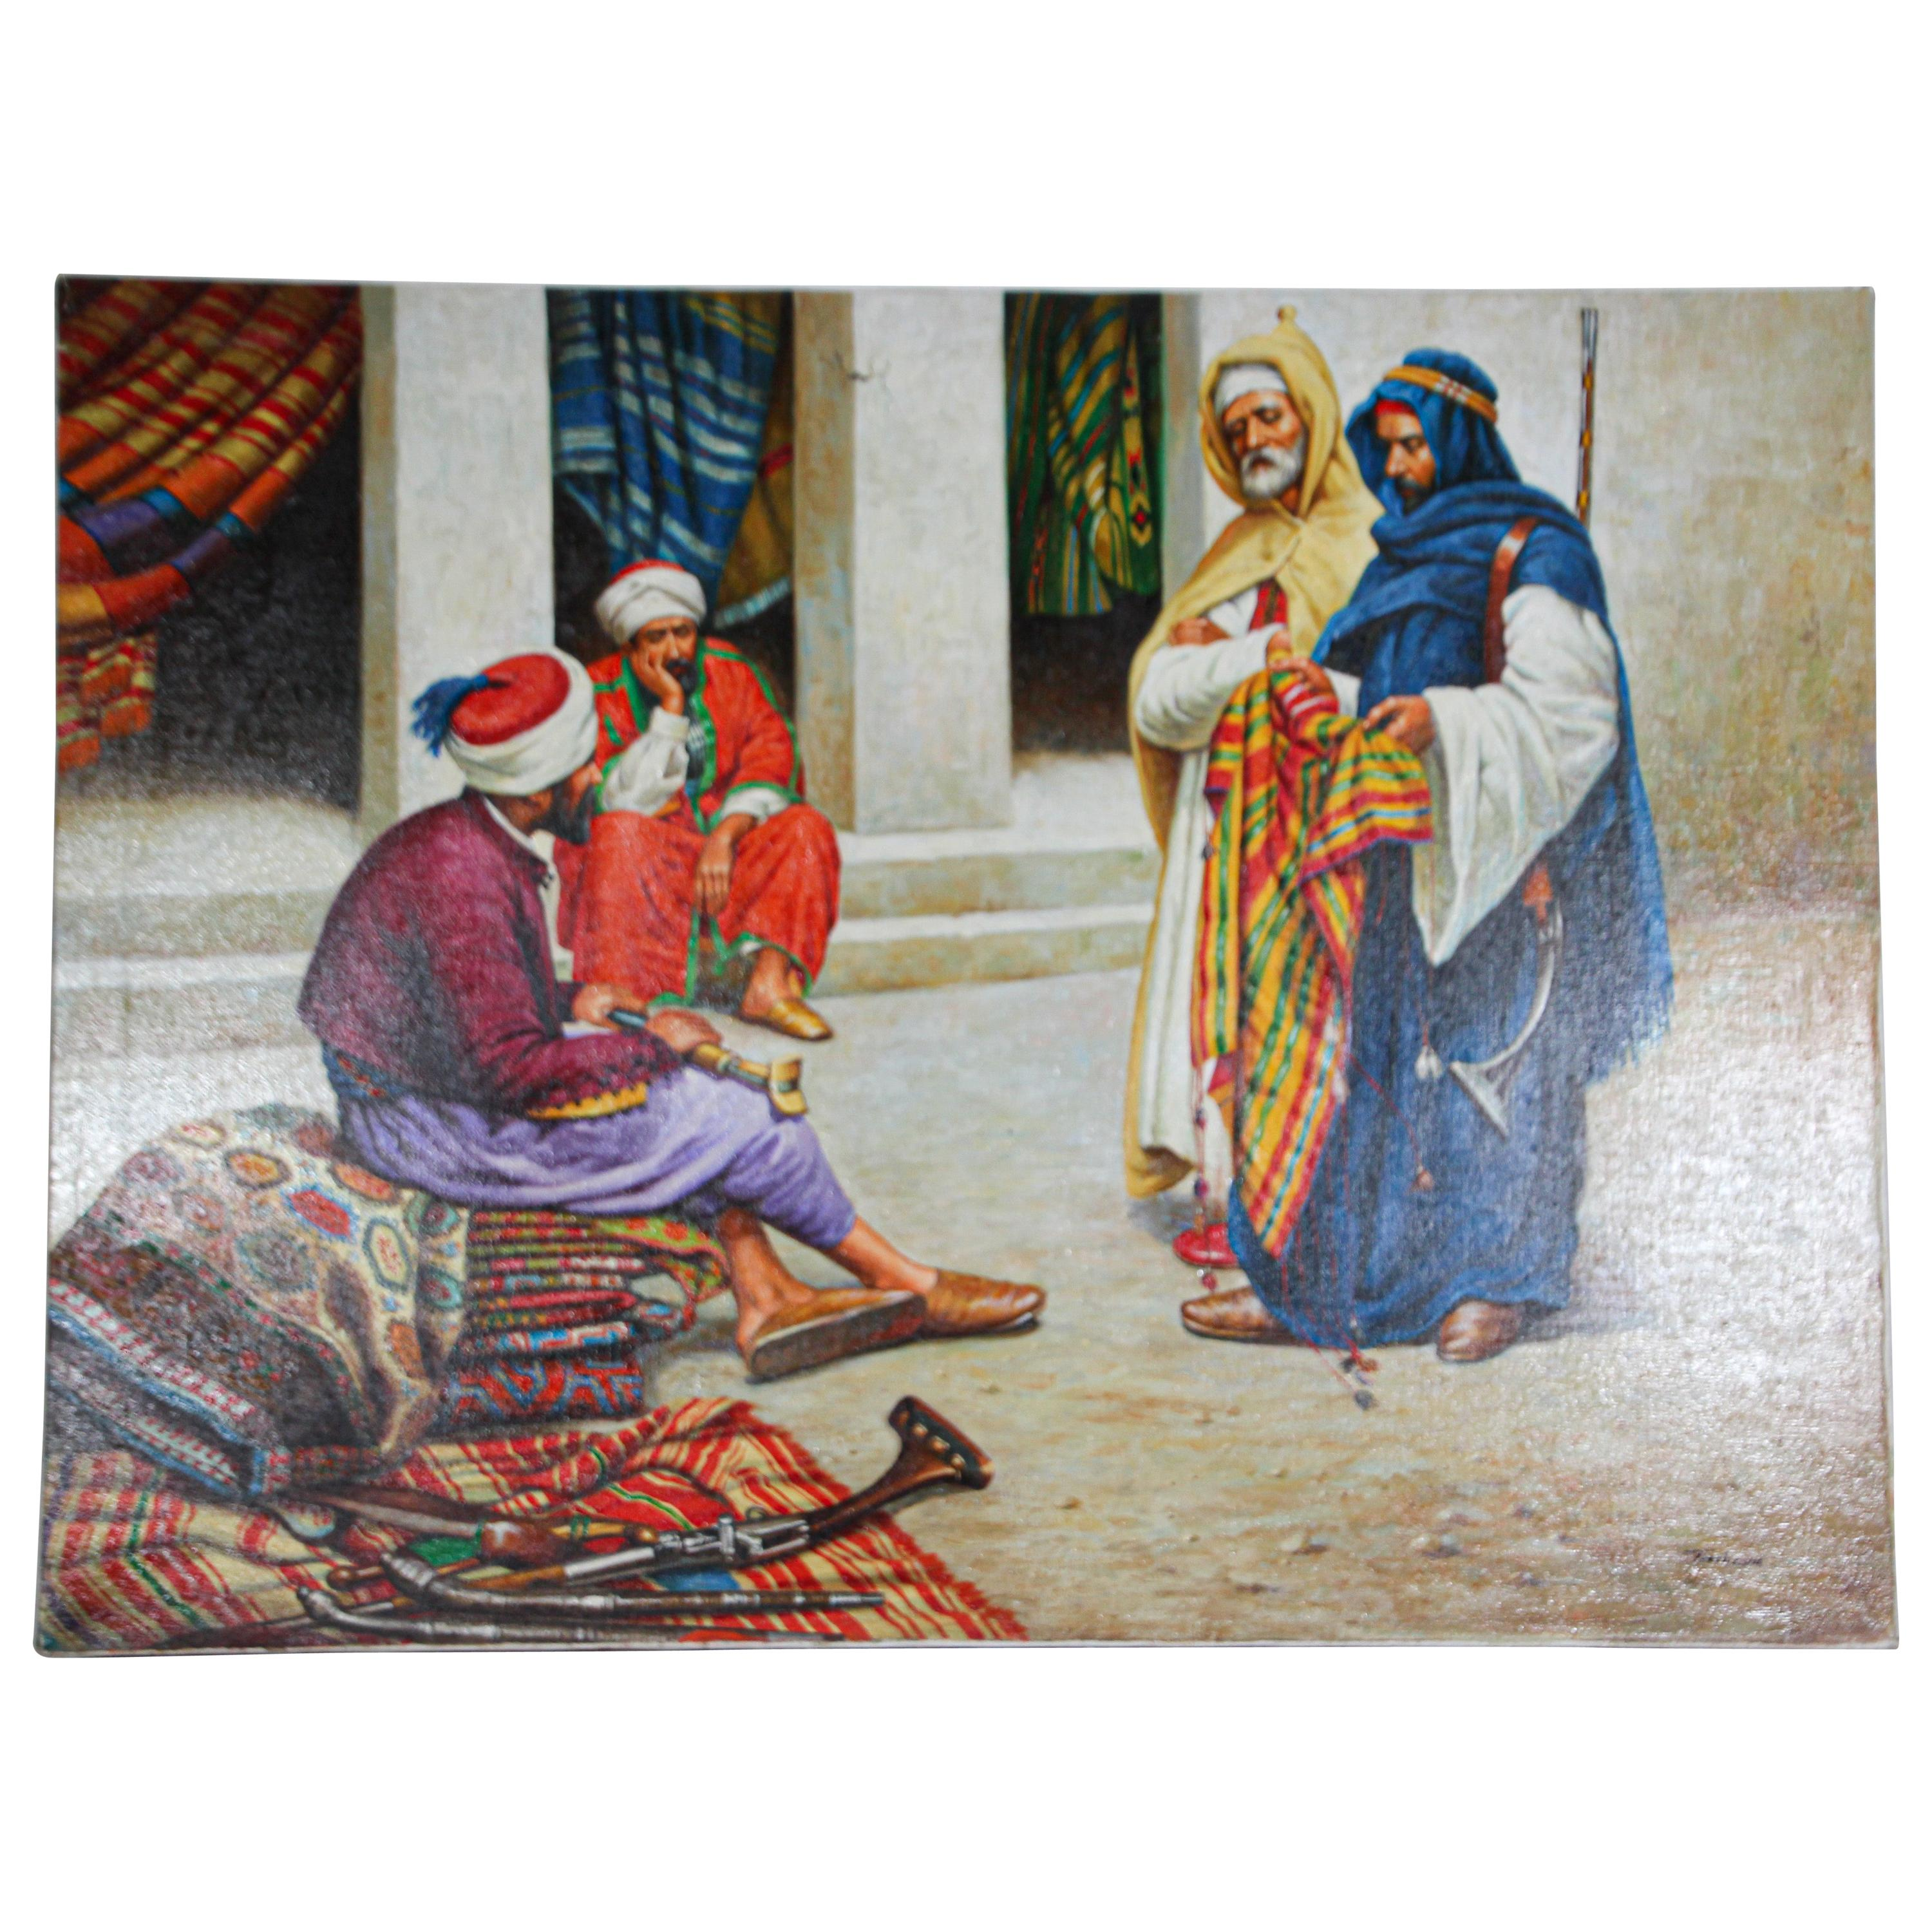 Moroccan Orientalist Oil Painting of a Rug Market